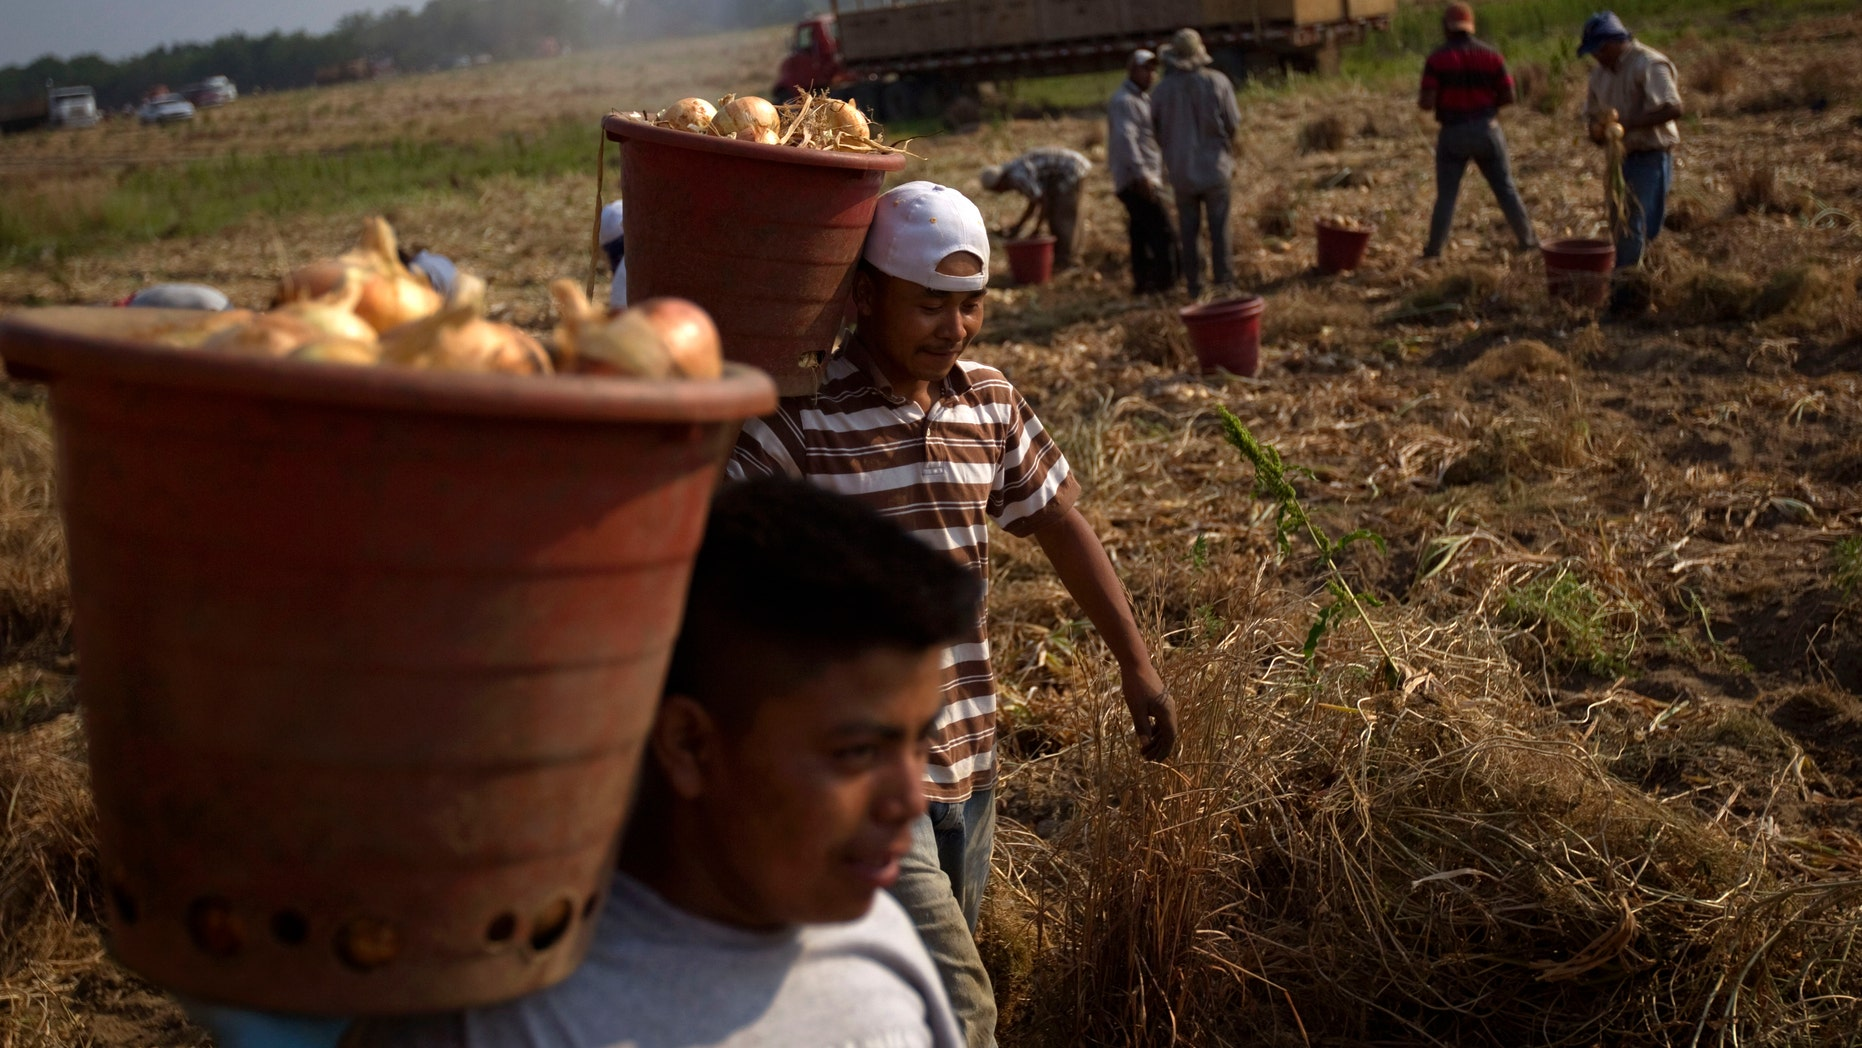 File - In this May 10, 2011 file photo, field workers pick onion bulbs on a Vidalia onion farm in Lyons, Ga. Georgia and Alabama have approved laws that have tough enforcement provisions that farmers say are scaring migrant workers away from the states.  (AP Photo/David Goldman, File)